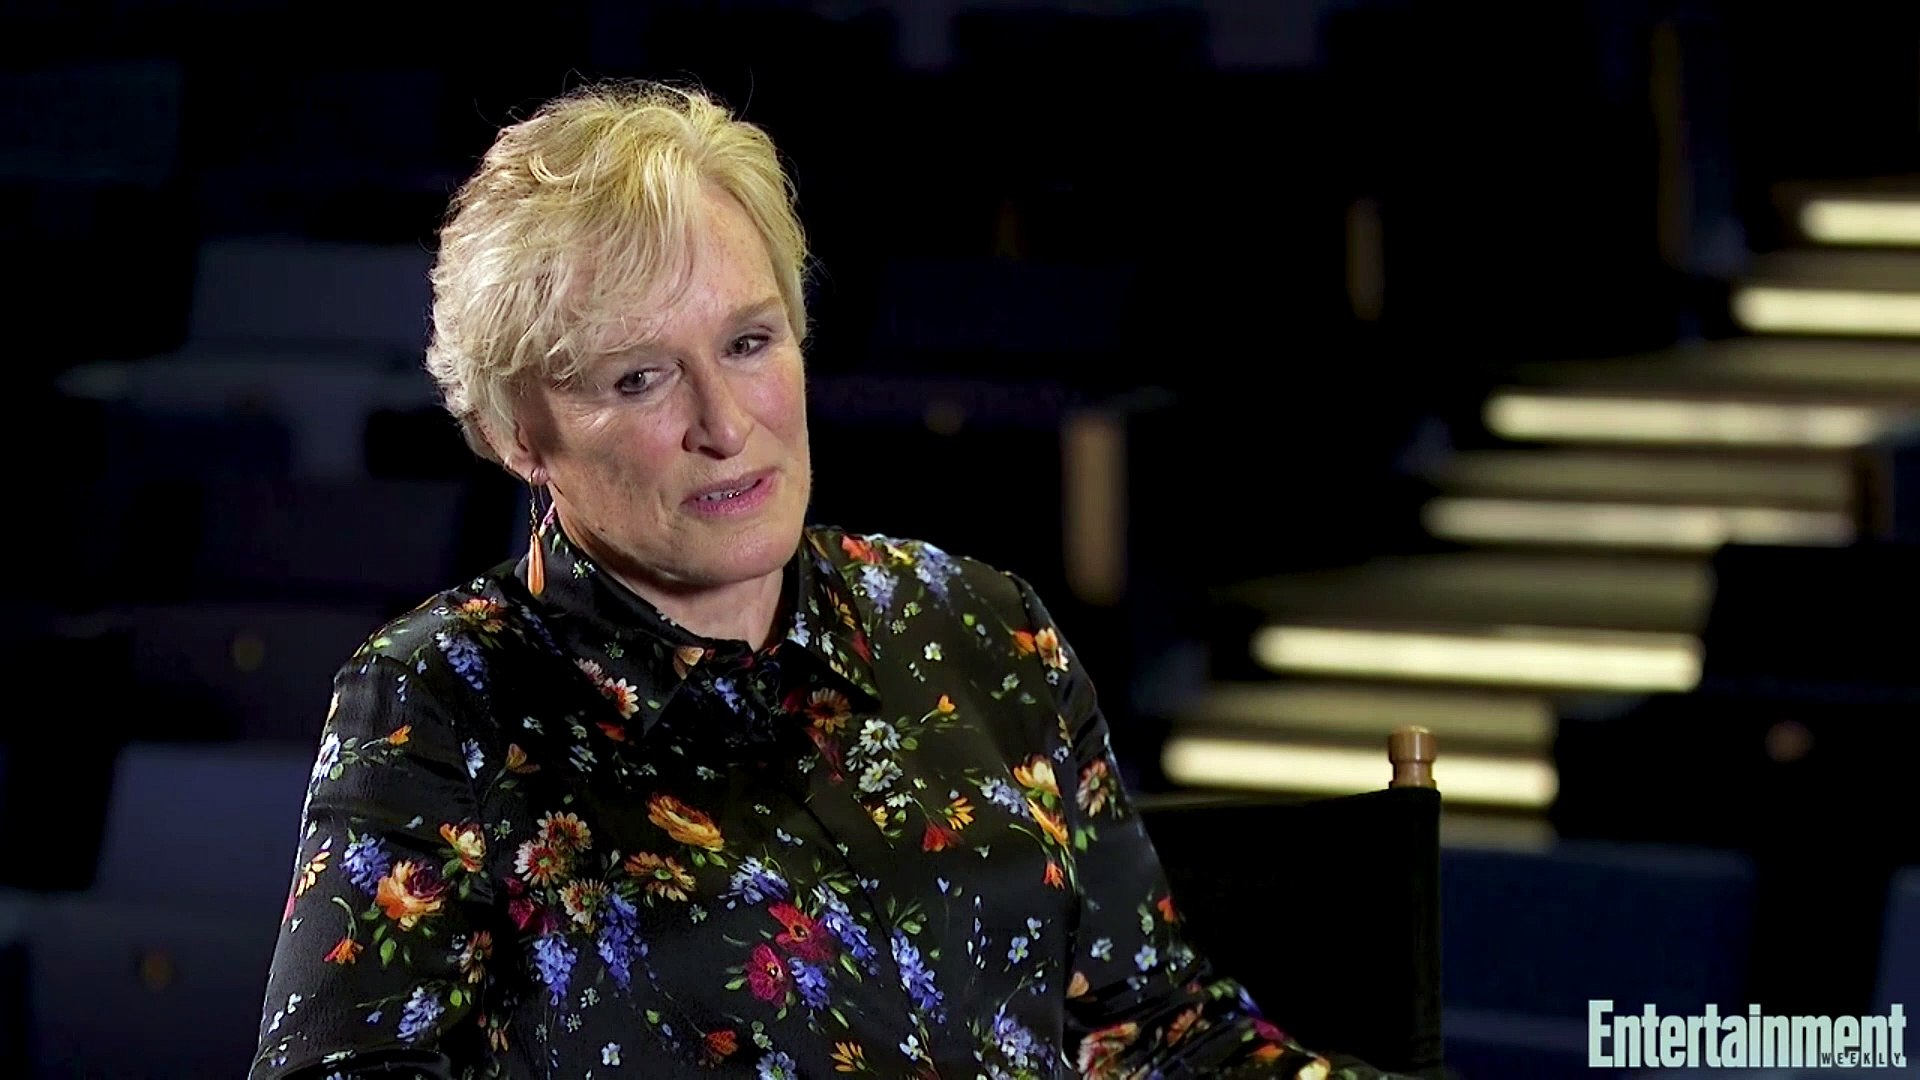 Glenn Close, Best Actress Nominee, Opens Up About 'The Wife' | Oscars 2019 | Entertainment